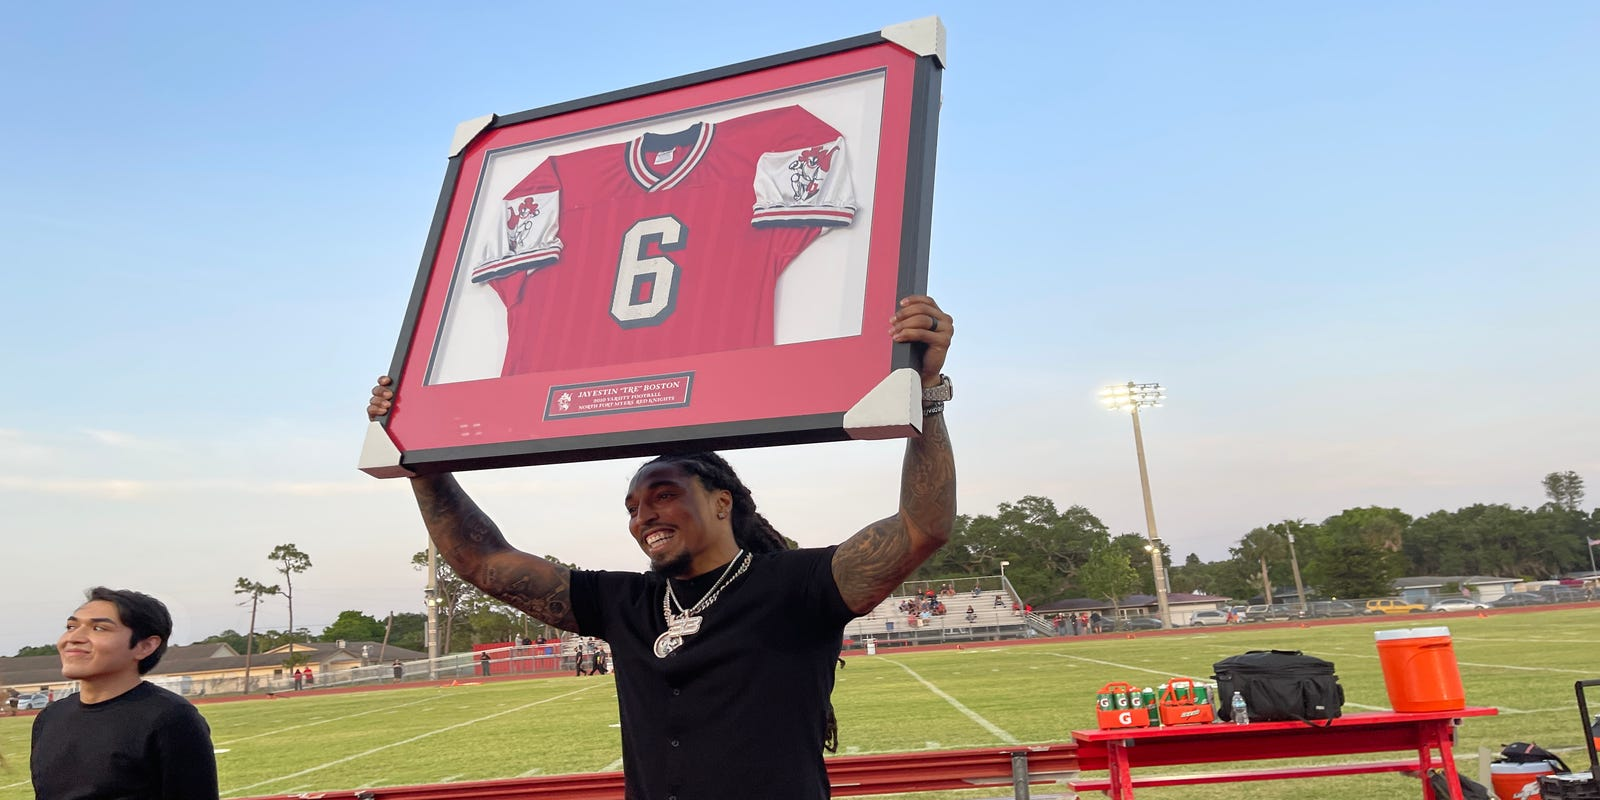 North Fort Myers alum Tre Boston's jersey retired at Moody Field